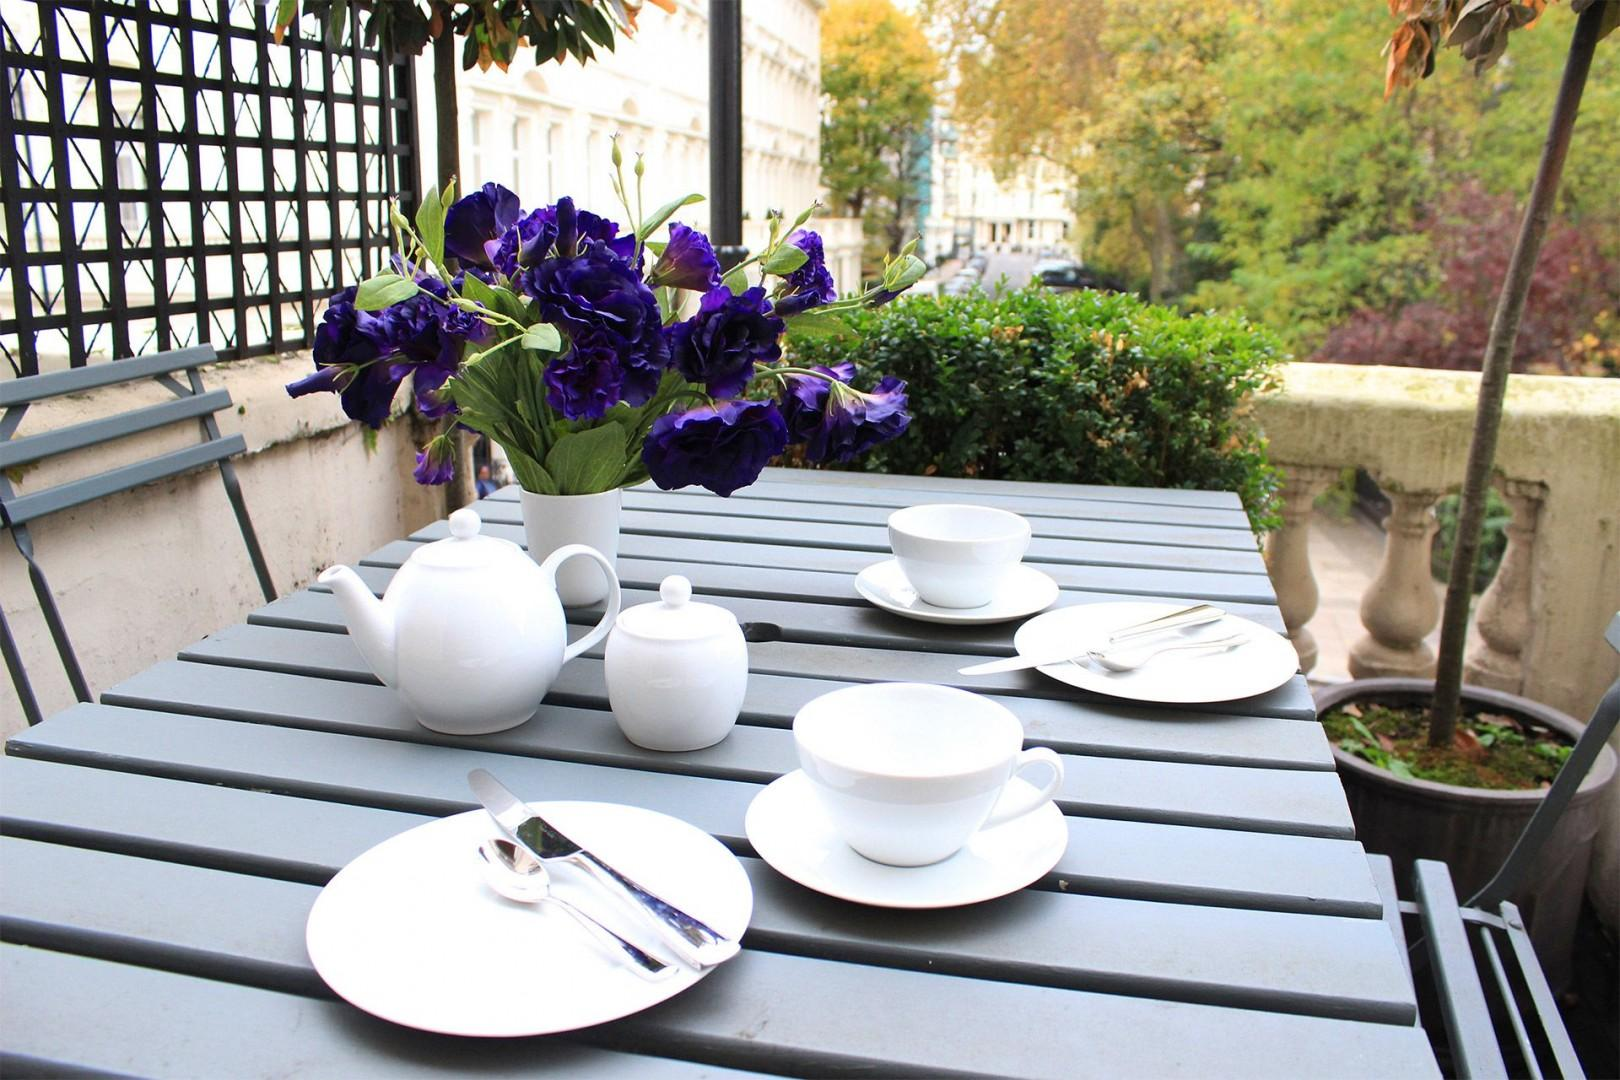 Set the balcony table for afternoon tea